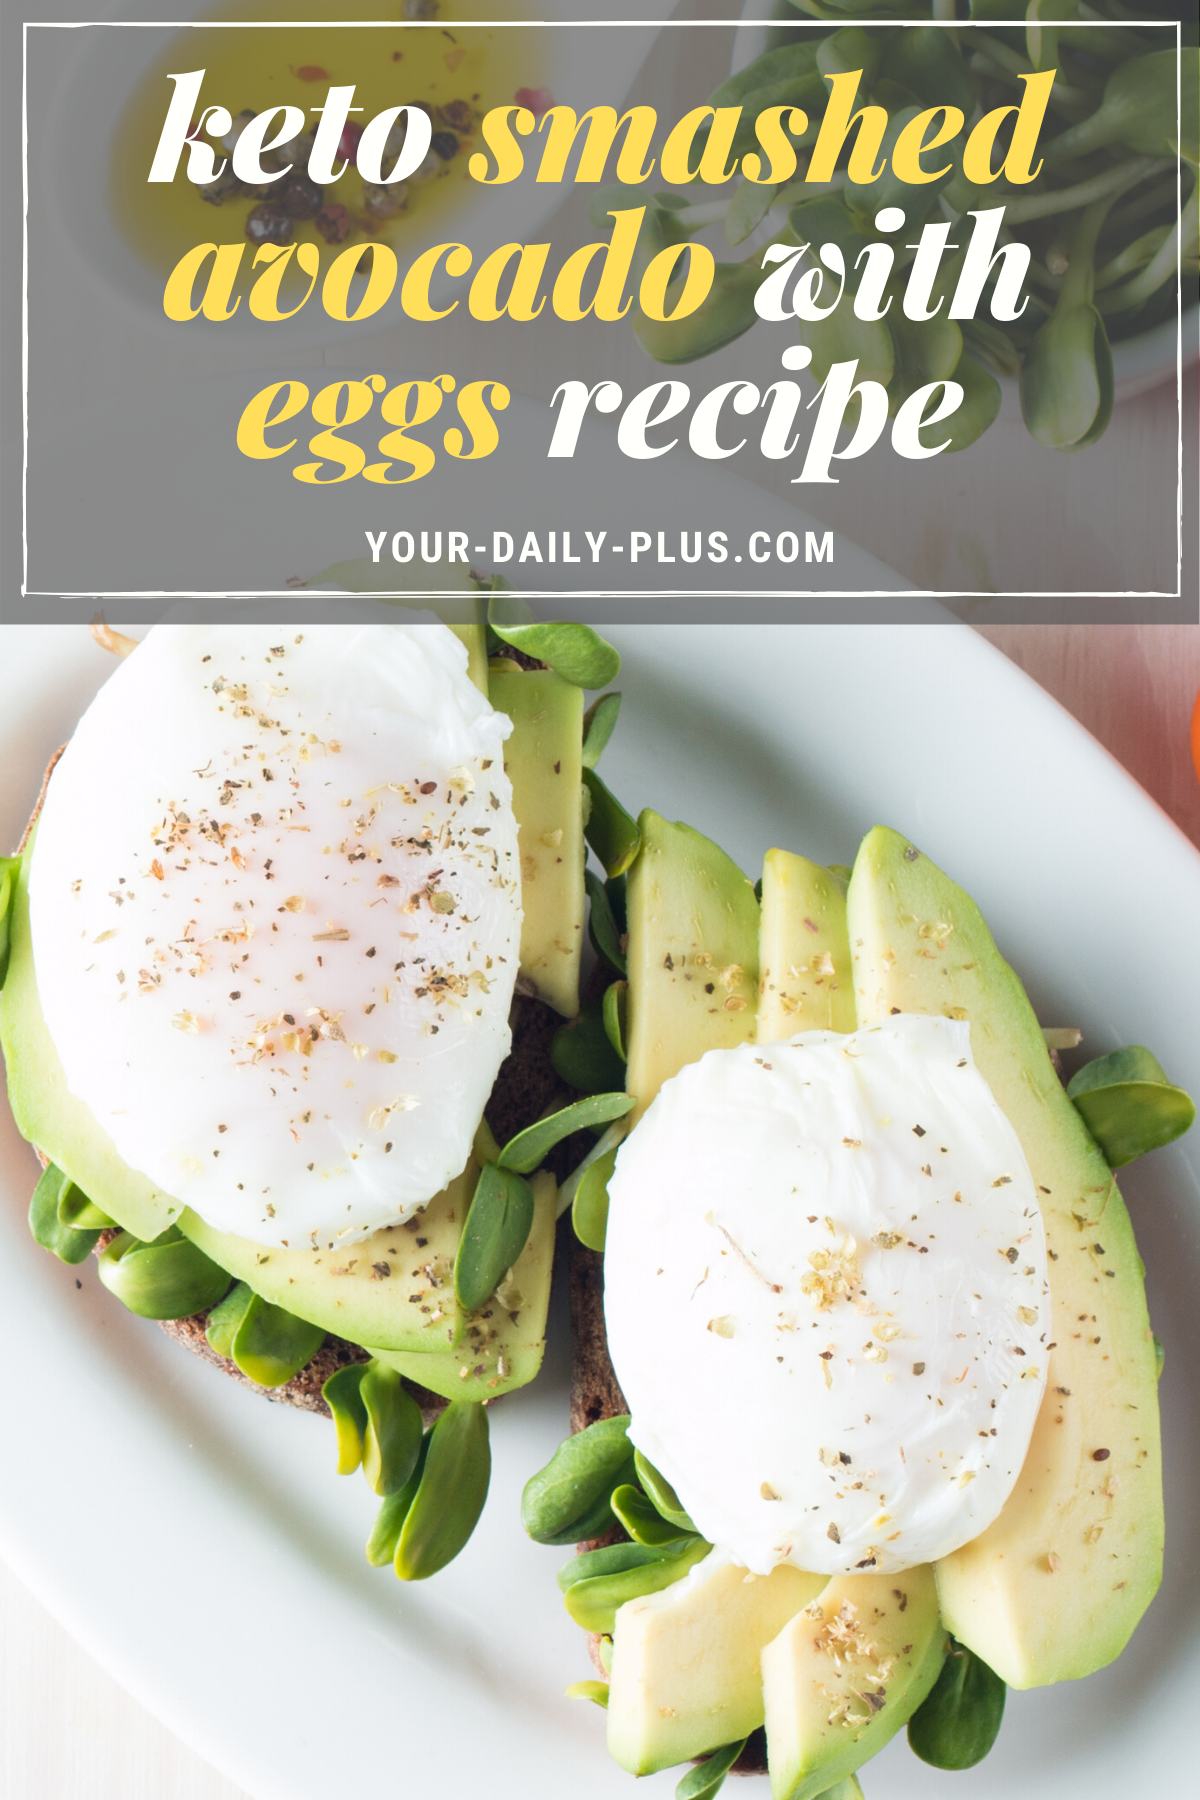 This is such a simple and delicious breakfast to make, and one you really can't get tired of eating. And although it is simple with just a few ingredients, you're going to find the combination of heart-healthy fats in avocado along with nutrient-dense eggs is going to keep you super-satiated throughout your morning. #ketobreakfast #lowcarbdiet #ketodiet